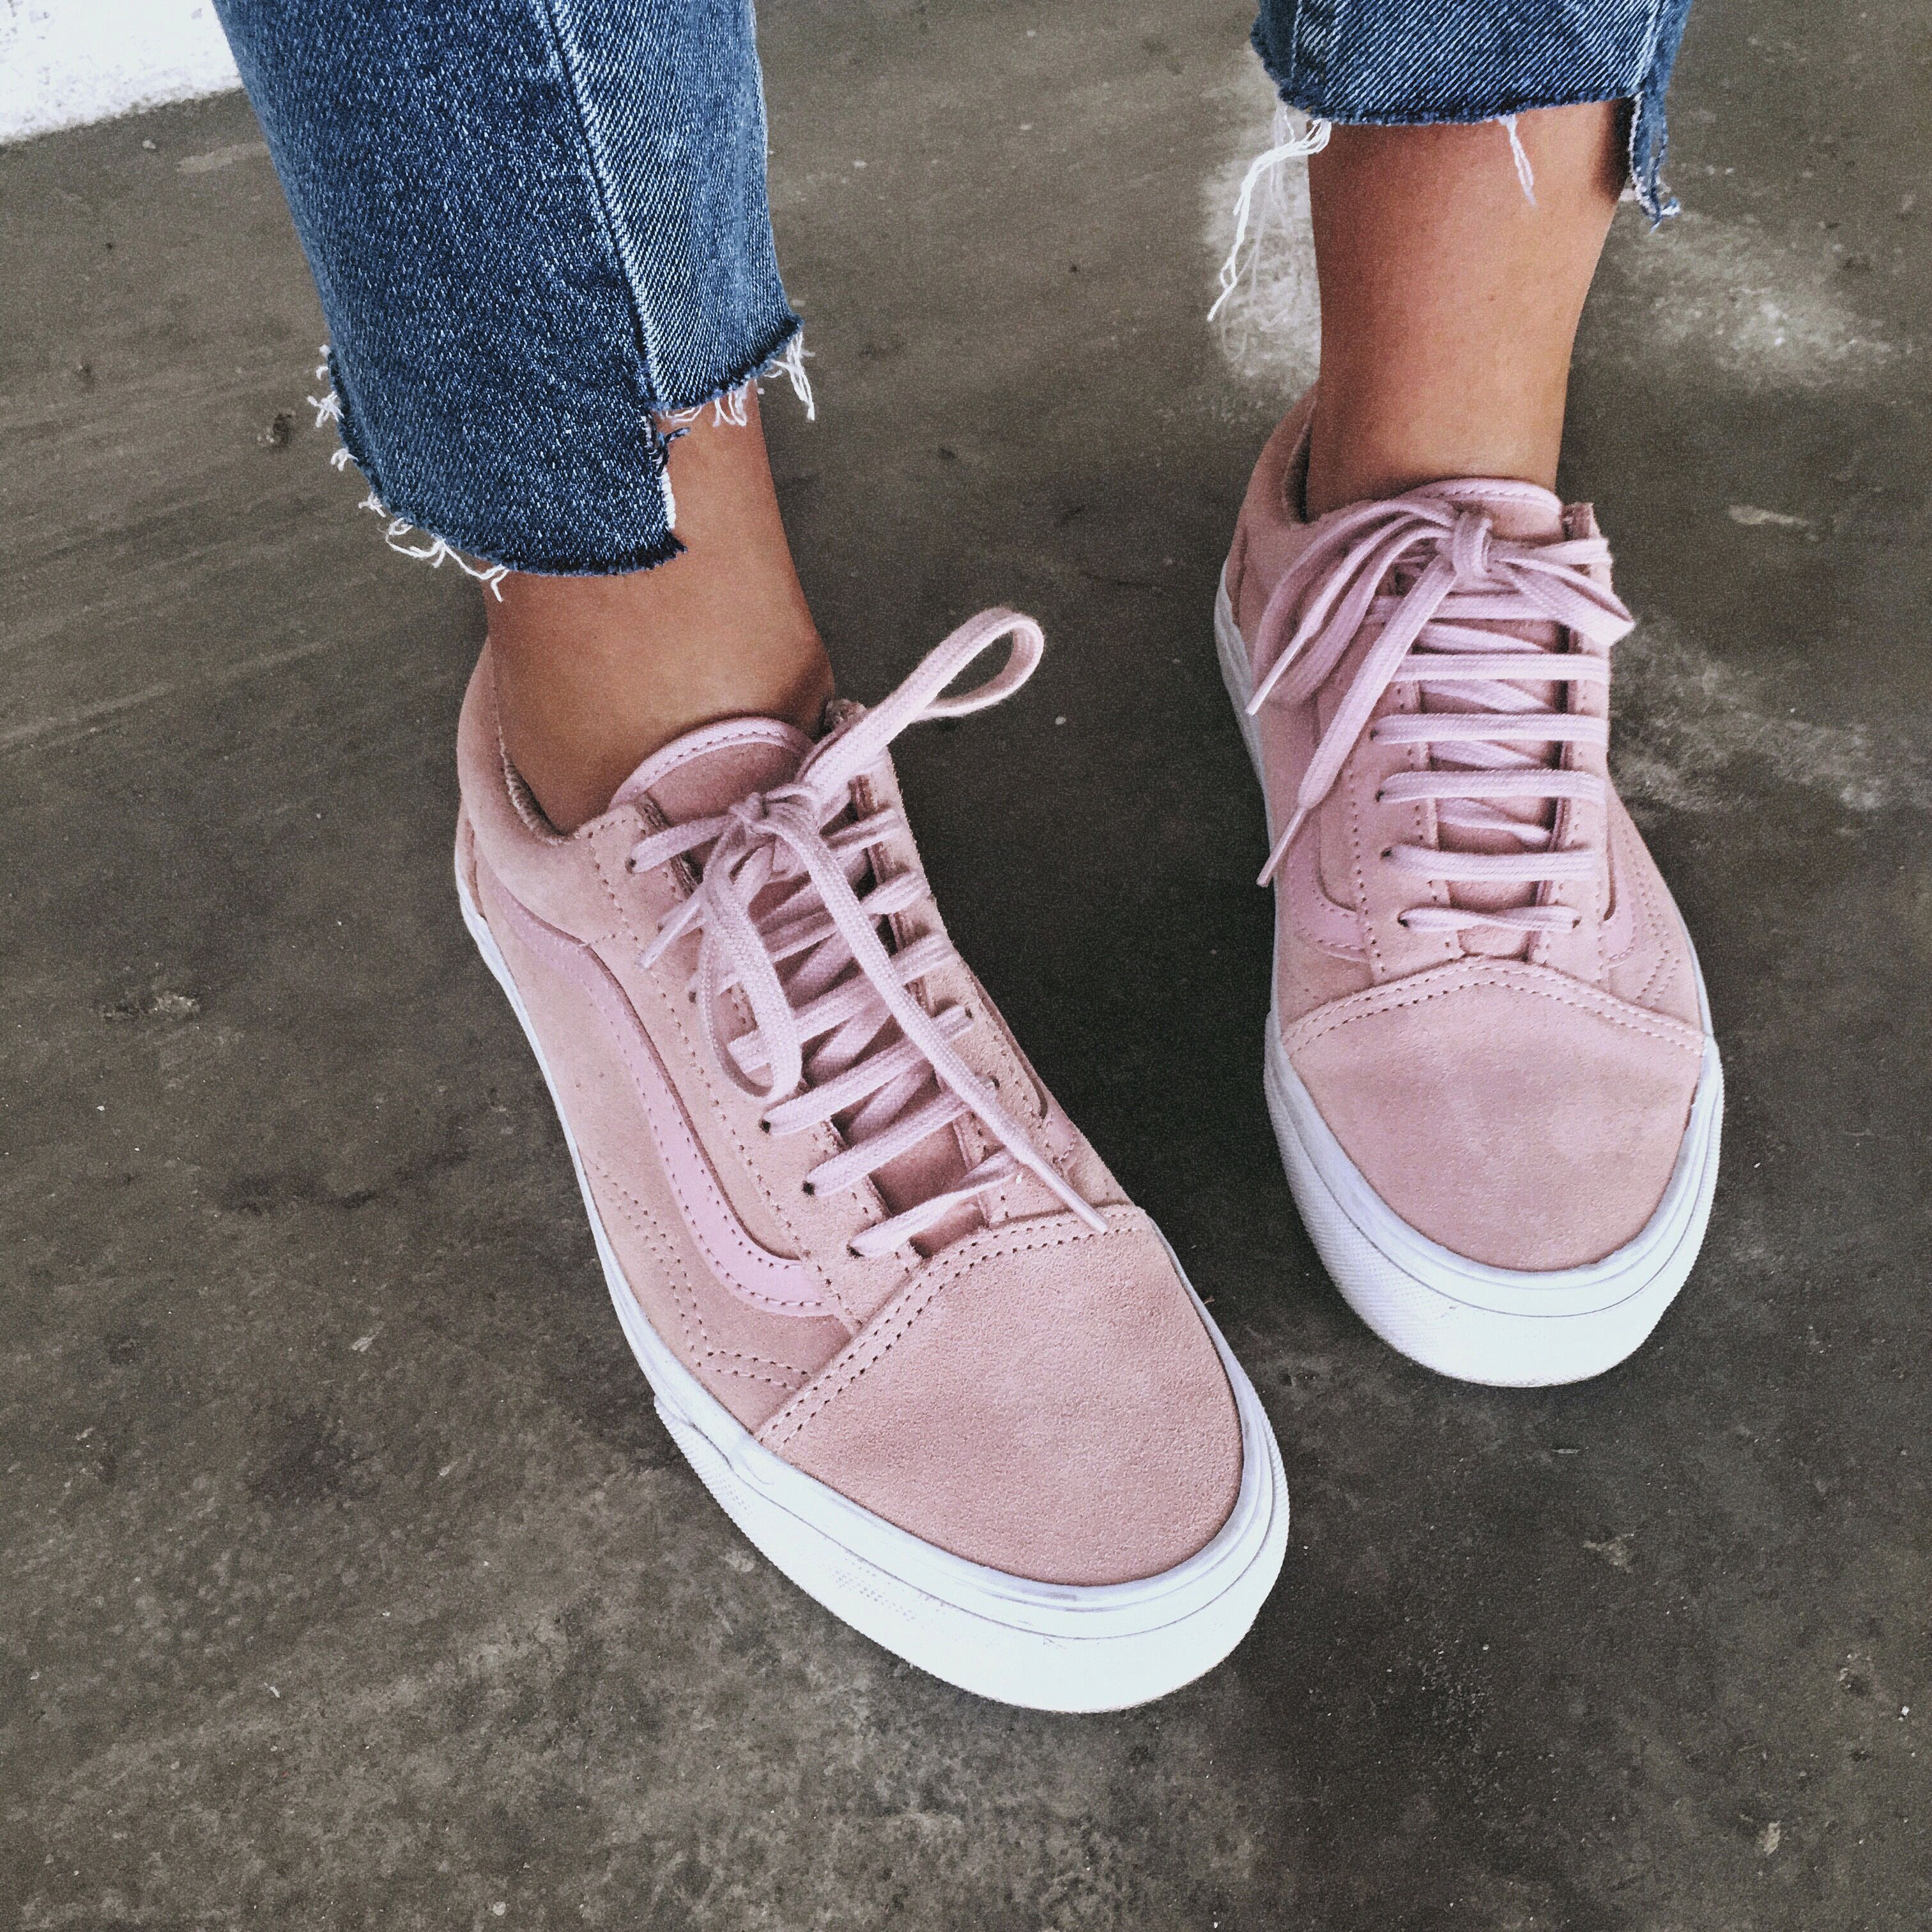 7a5685a2f9 Dusty Pink Vans old school (Instagram  sasimb)